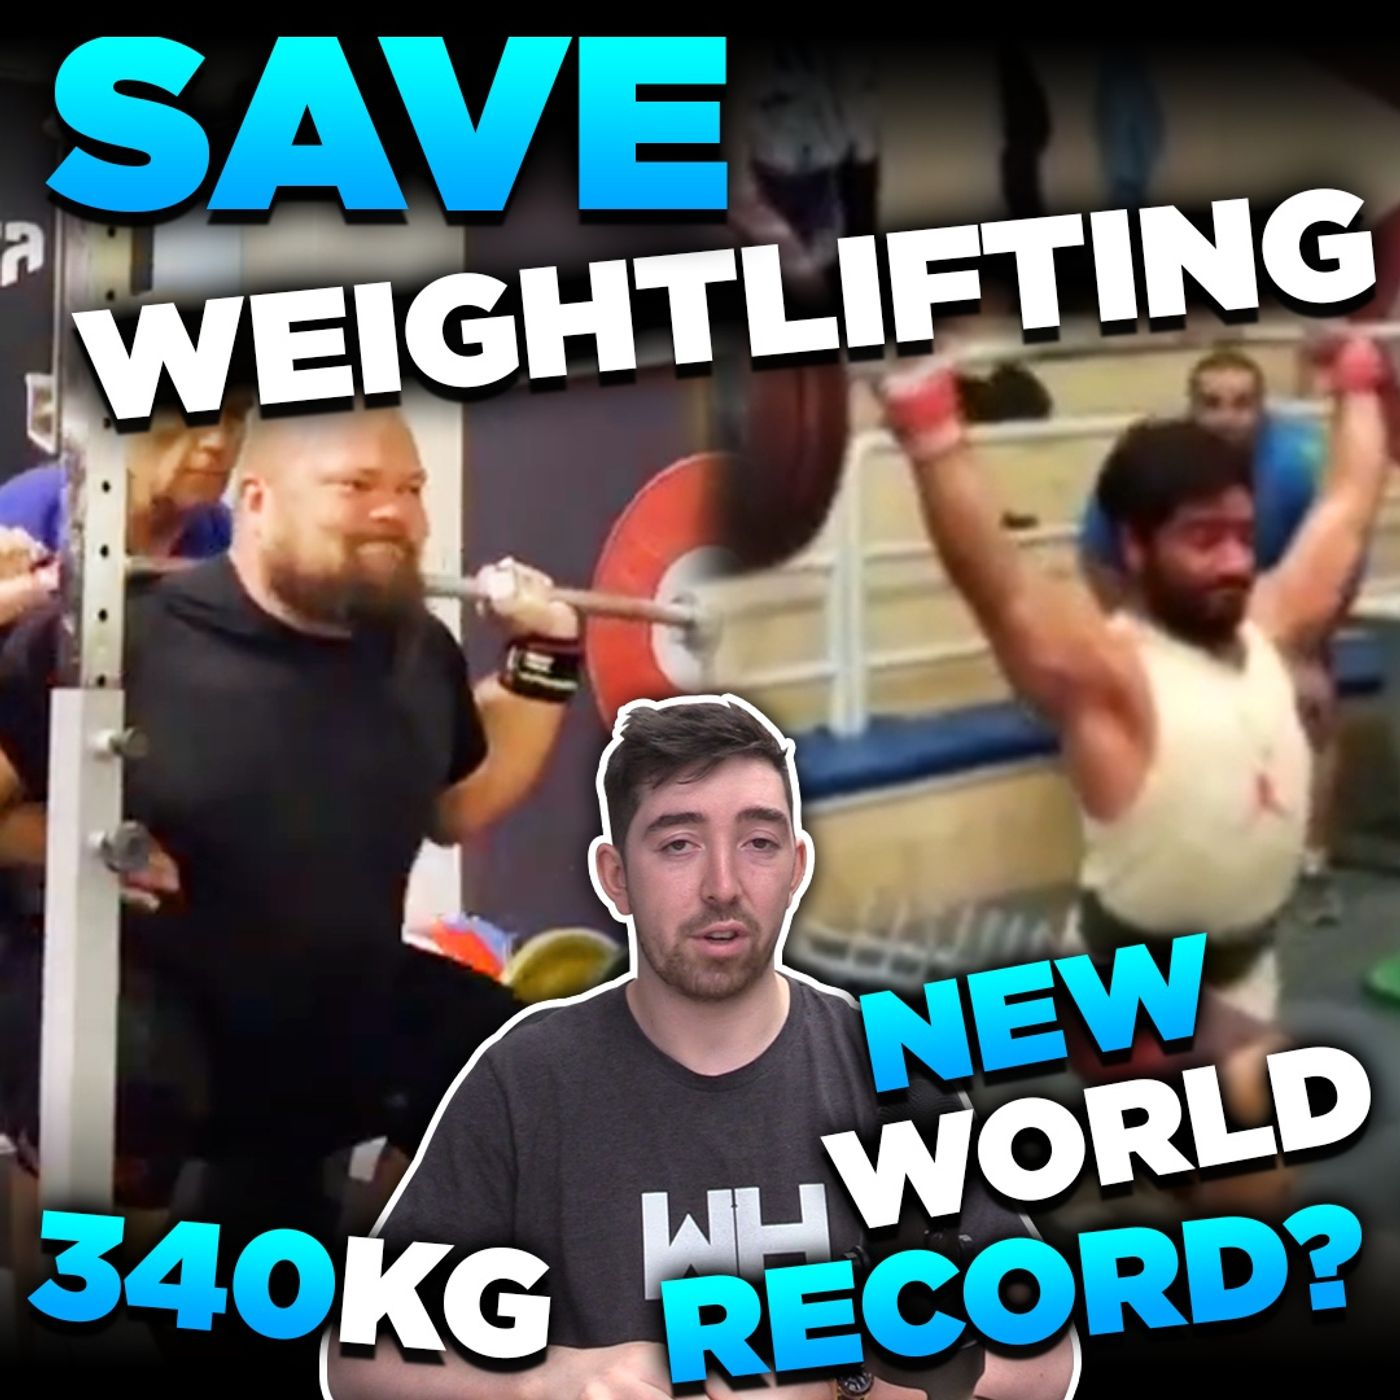 New 208kg Unofficial WORLD RECORD by... | WL News